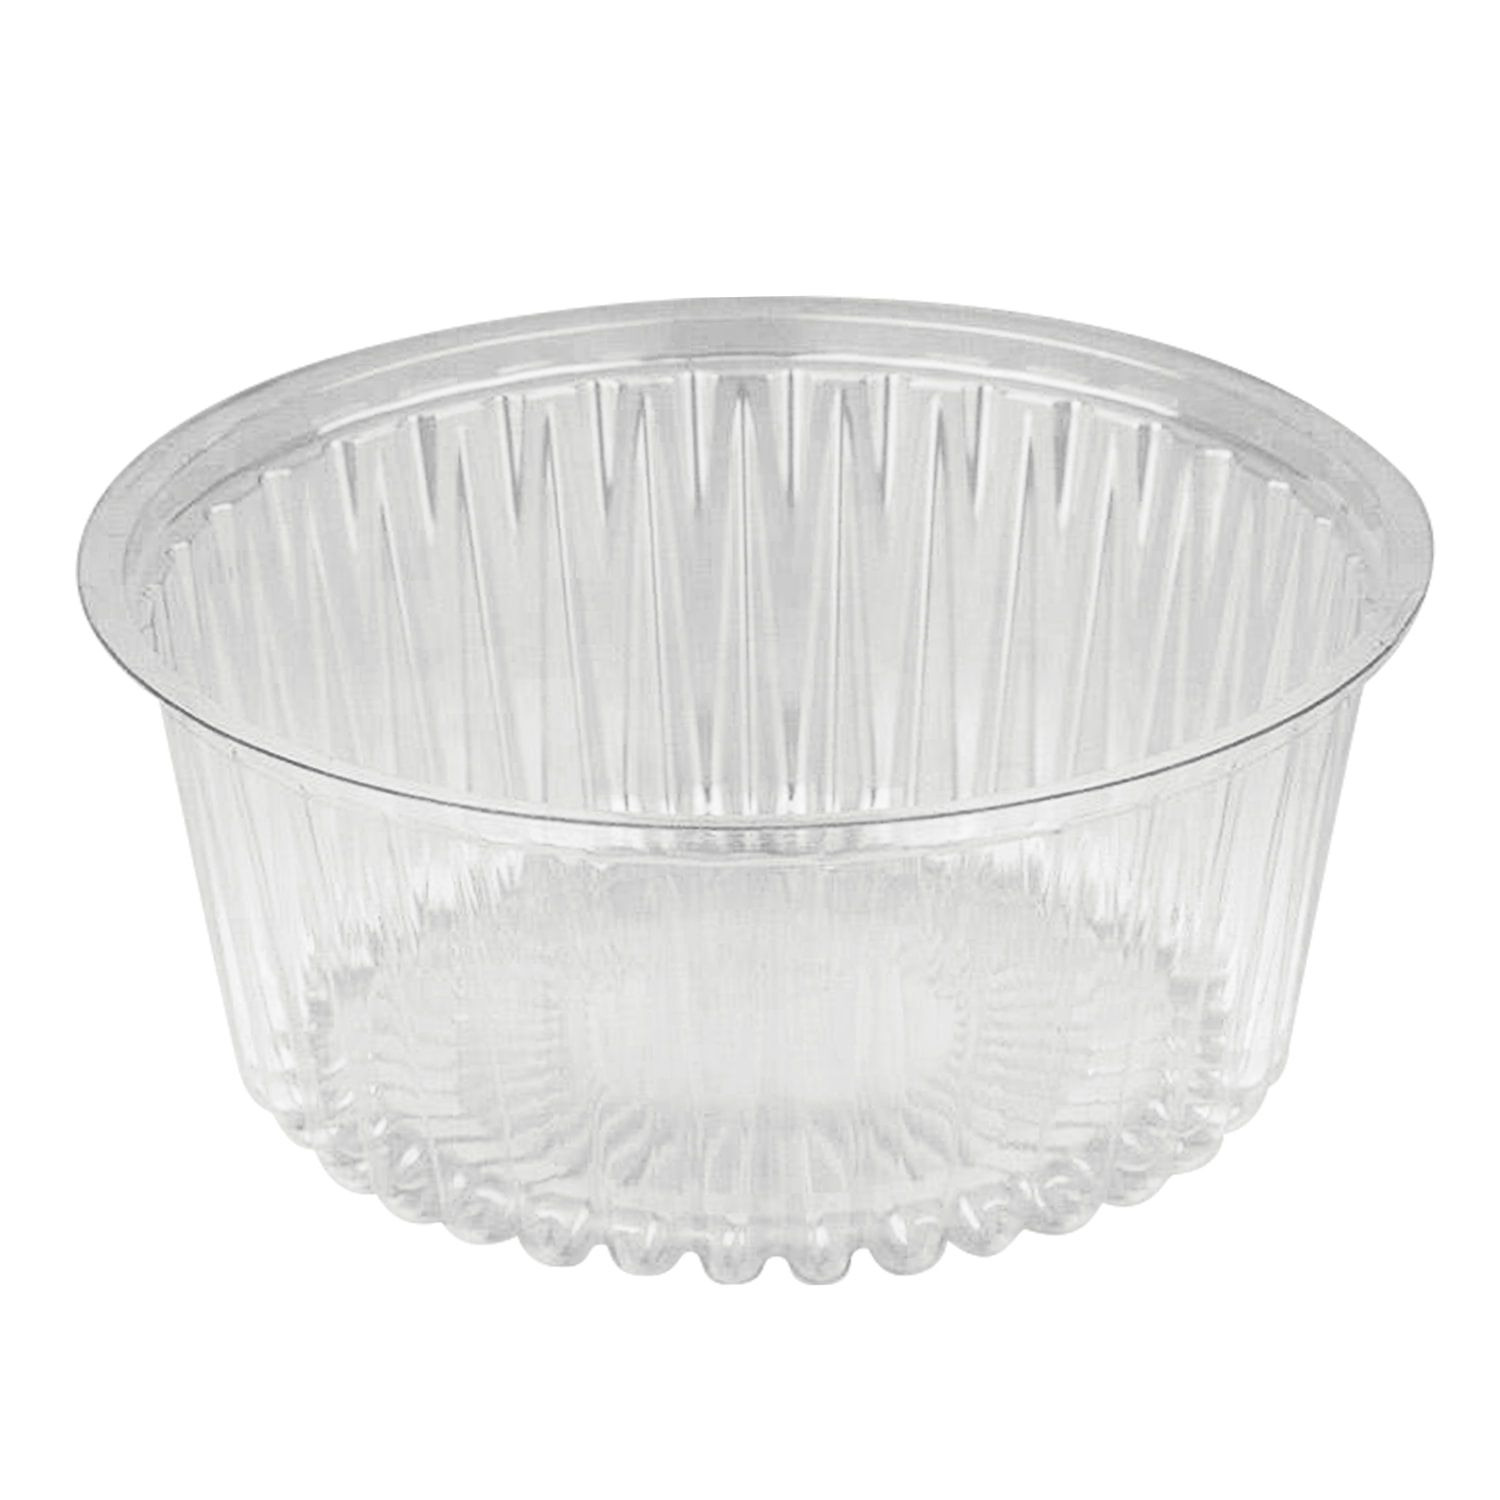 STYROLPLAST / Round disposable container, 500 ml, WITHOUT LID, 132x55 mm, PET, transparent, cap code 604312